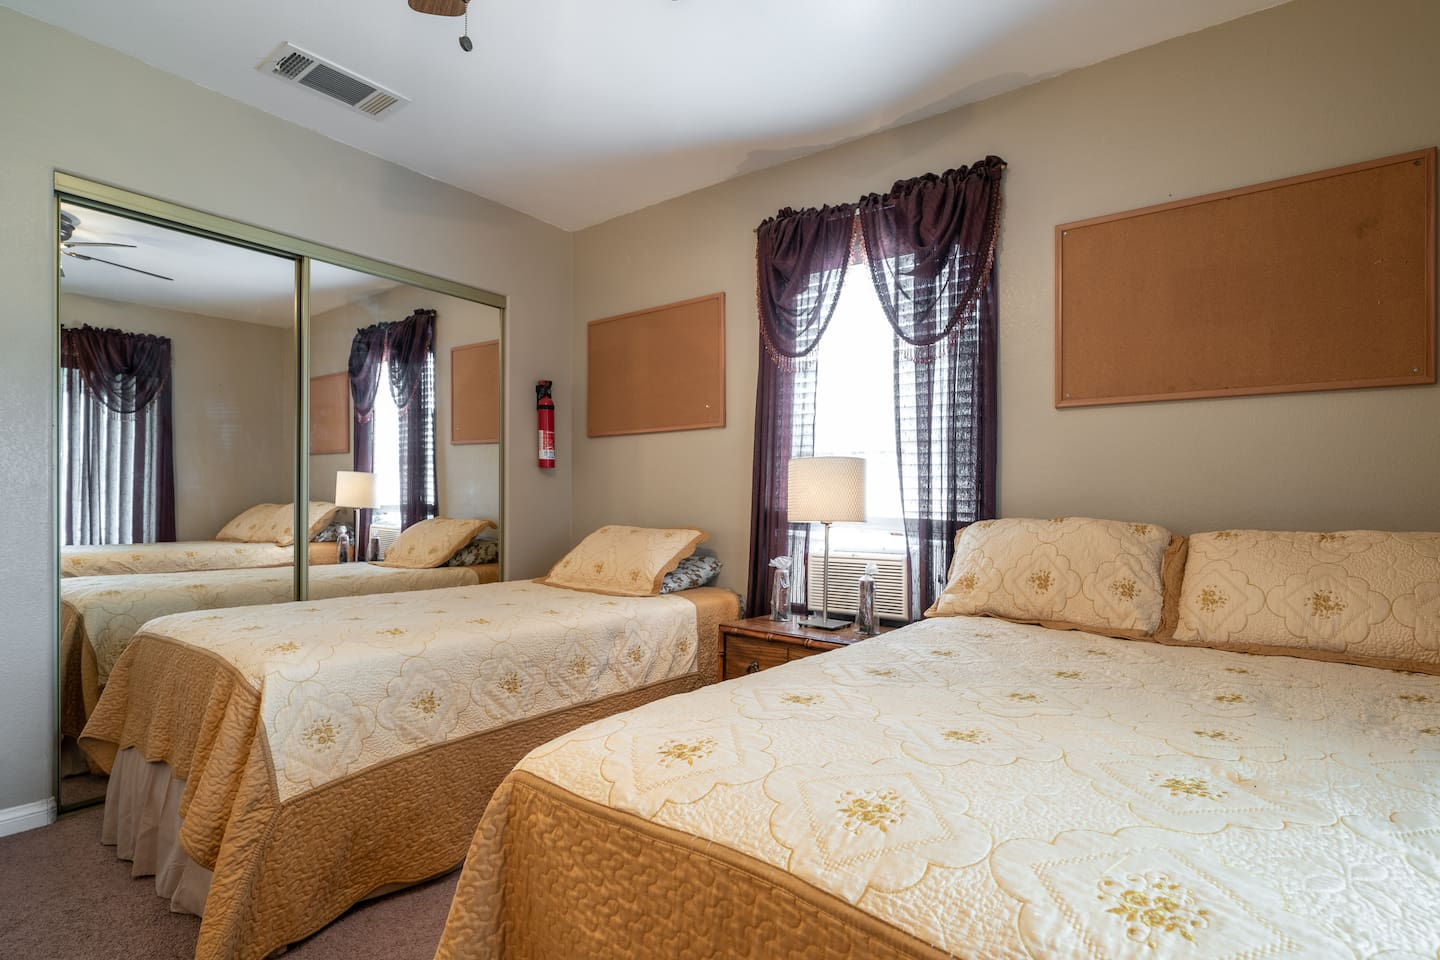 Bedroom 1  - Sleeps 1-3 Twin and Full size REAL beds, Chair, Lamps, Ceiling Fan, Window Air Conditioner, Mirror Closet, Flat Screen TV & DVR